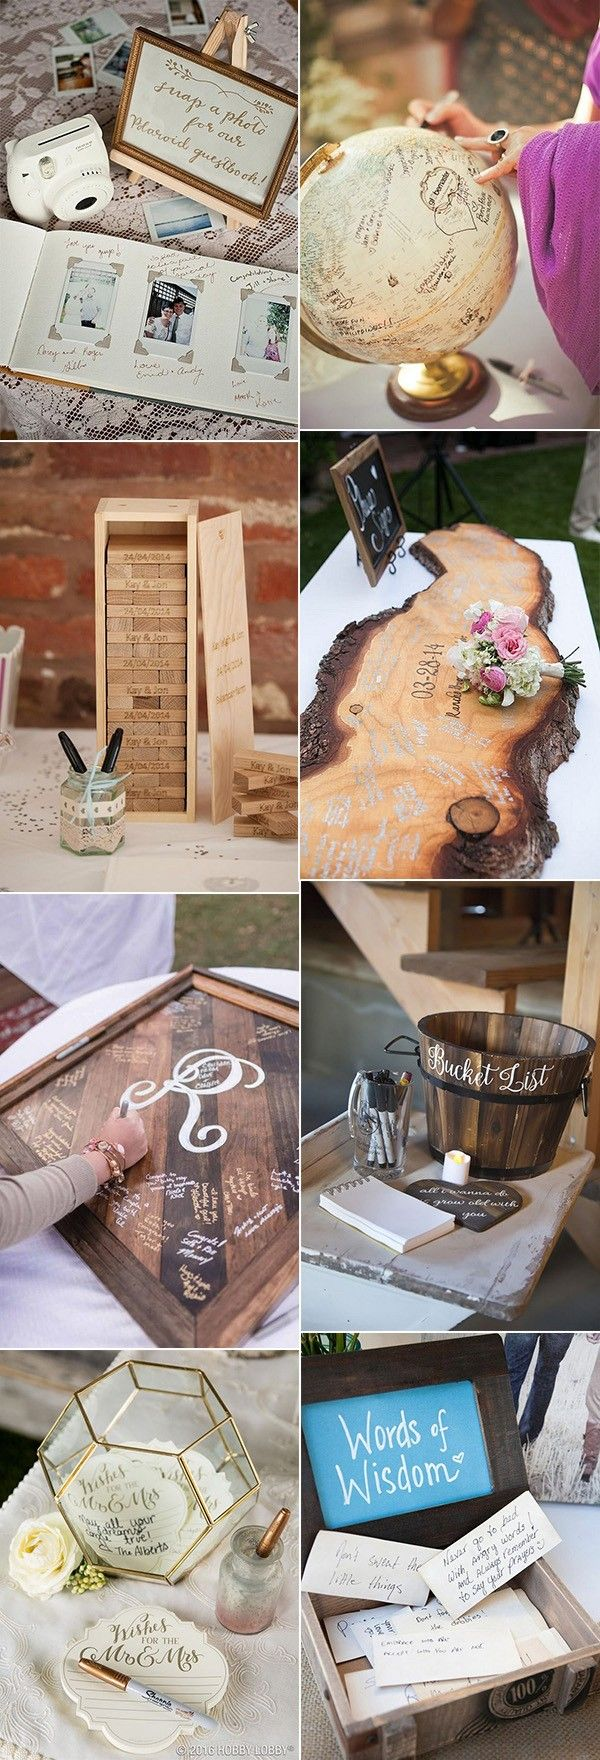 Wedding room decoration ideas 2018   Creative Wedding Guest Book Ideas in   For the Future Brides